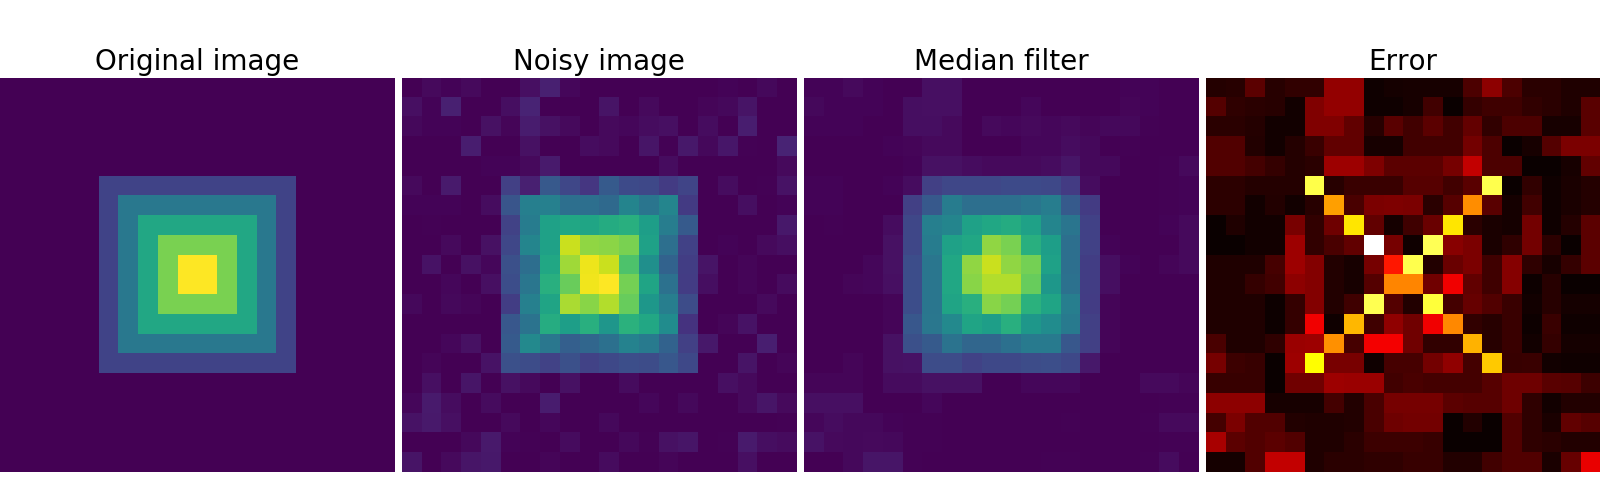 2 6 8 15  Denoising an image with the median filter — Scipy